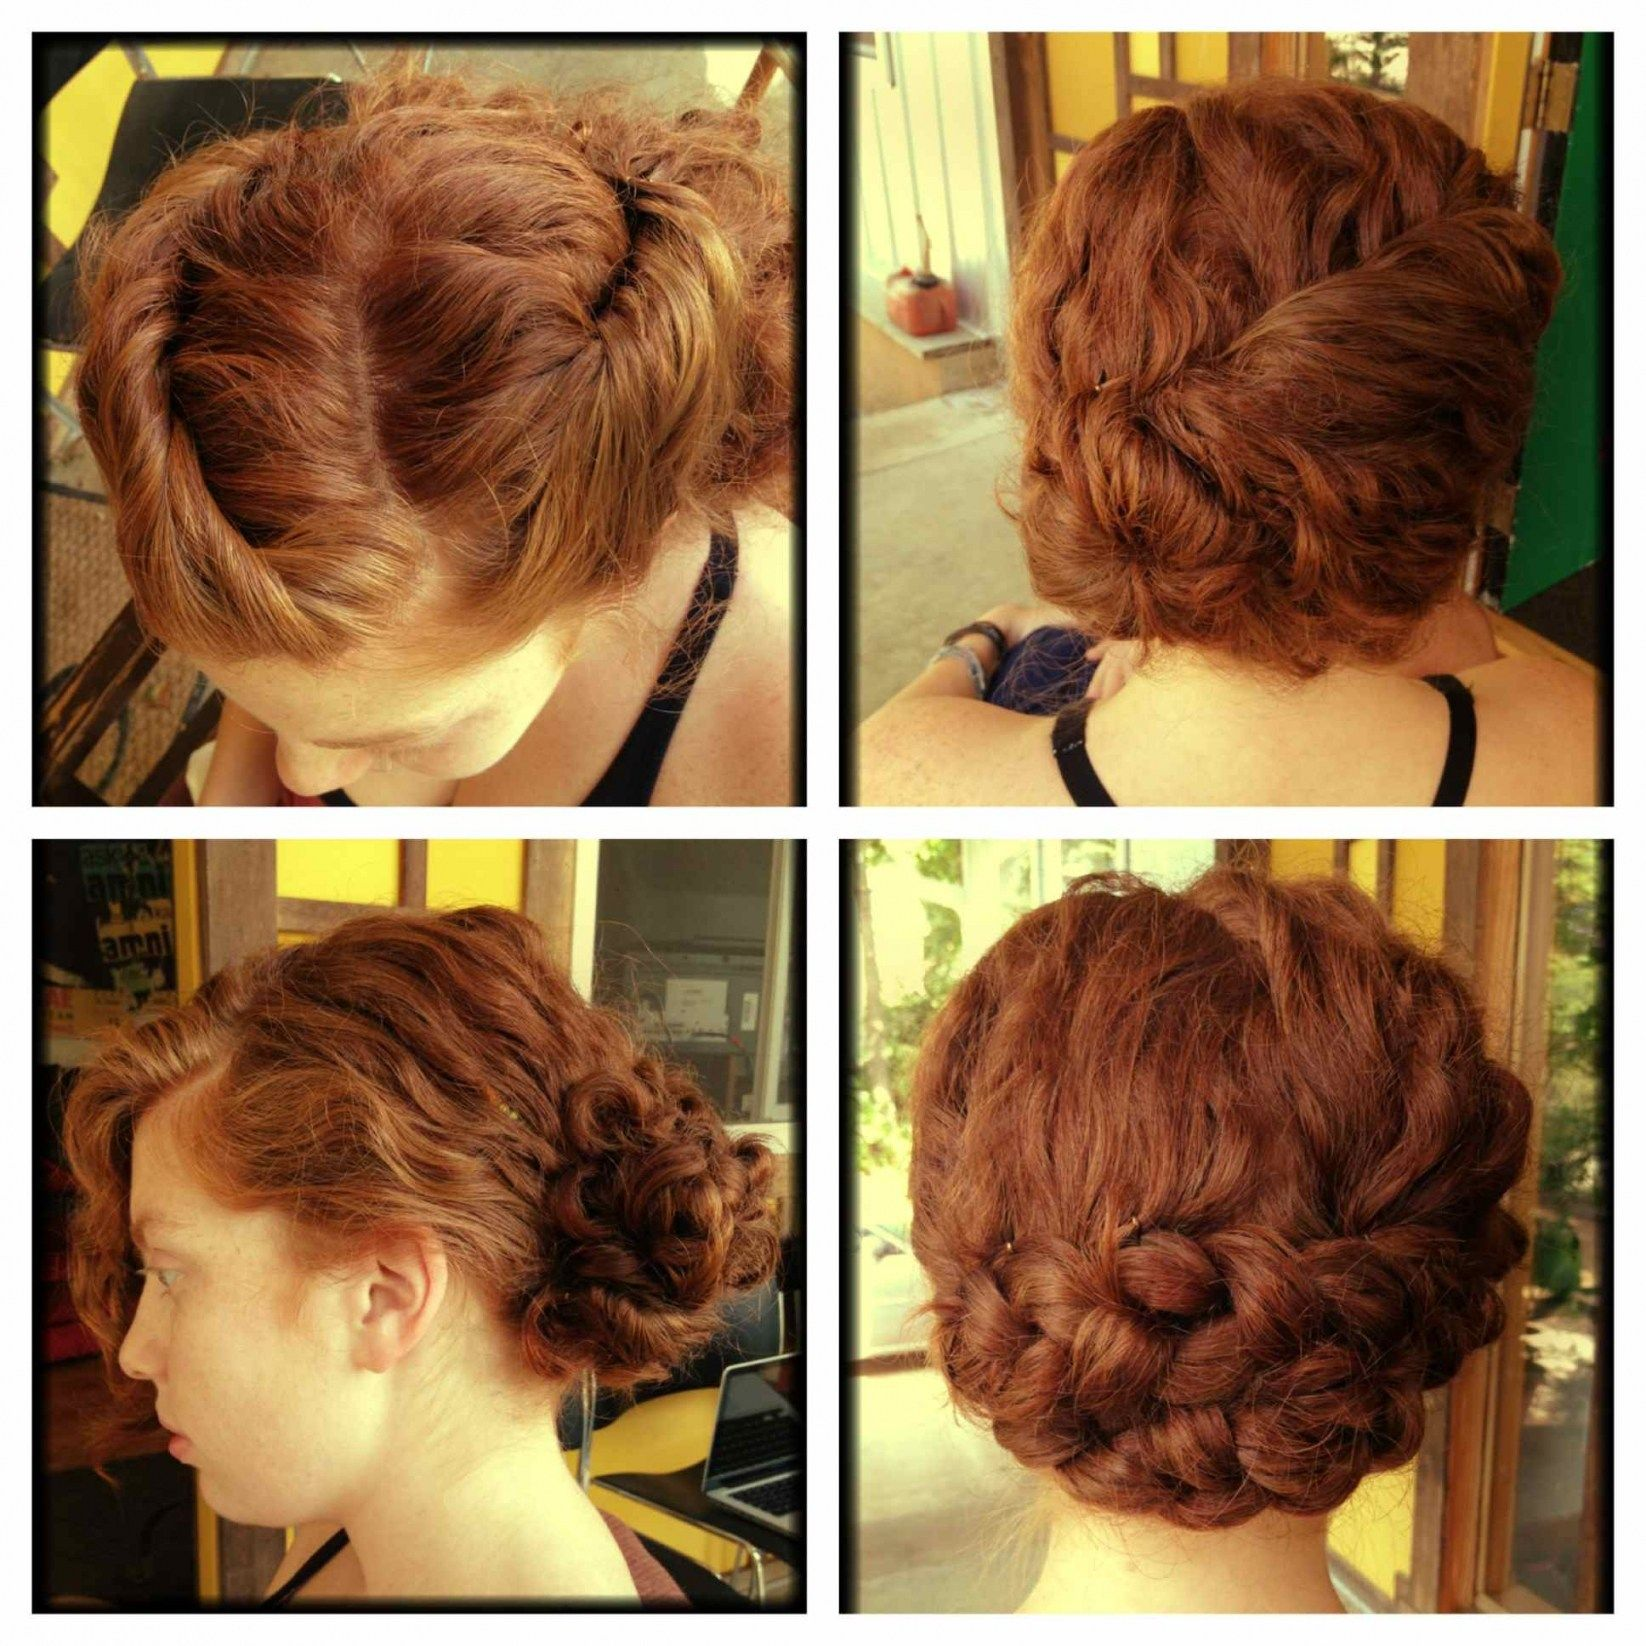 do it yourself wedding hairstyles for curly hair | do it